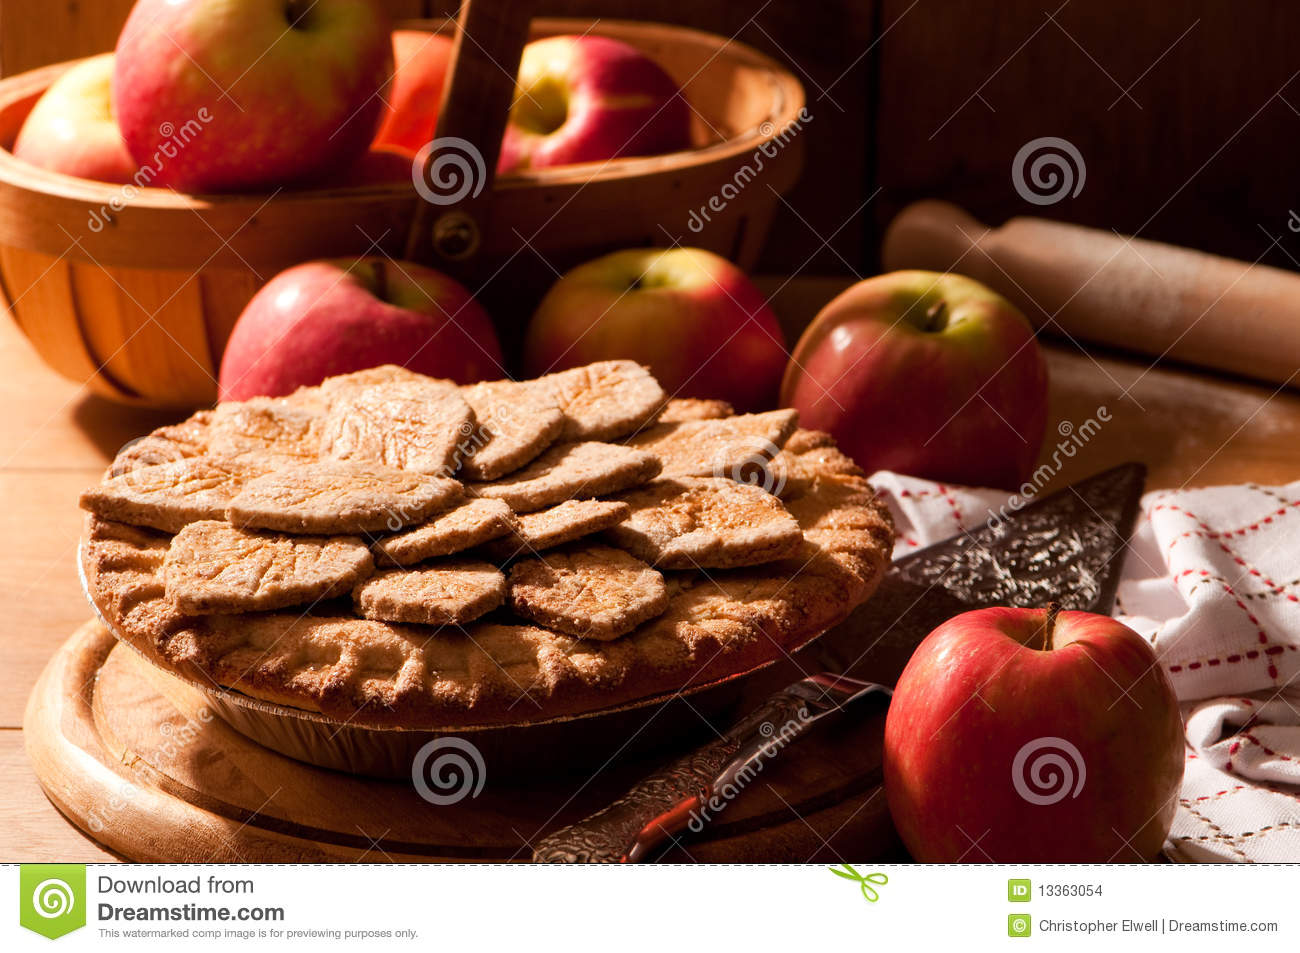 Apple Pie Stock Images - Image: 13363054